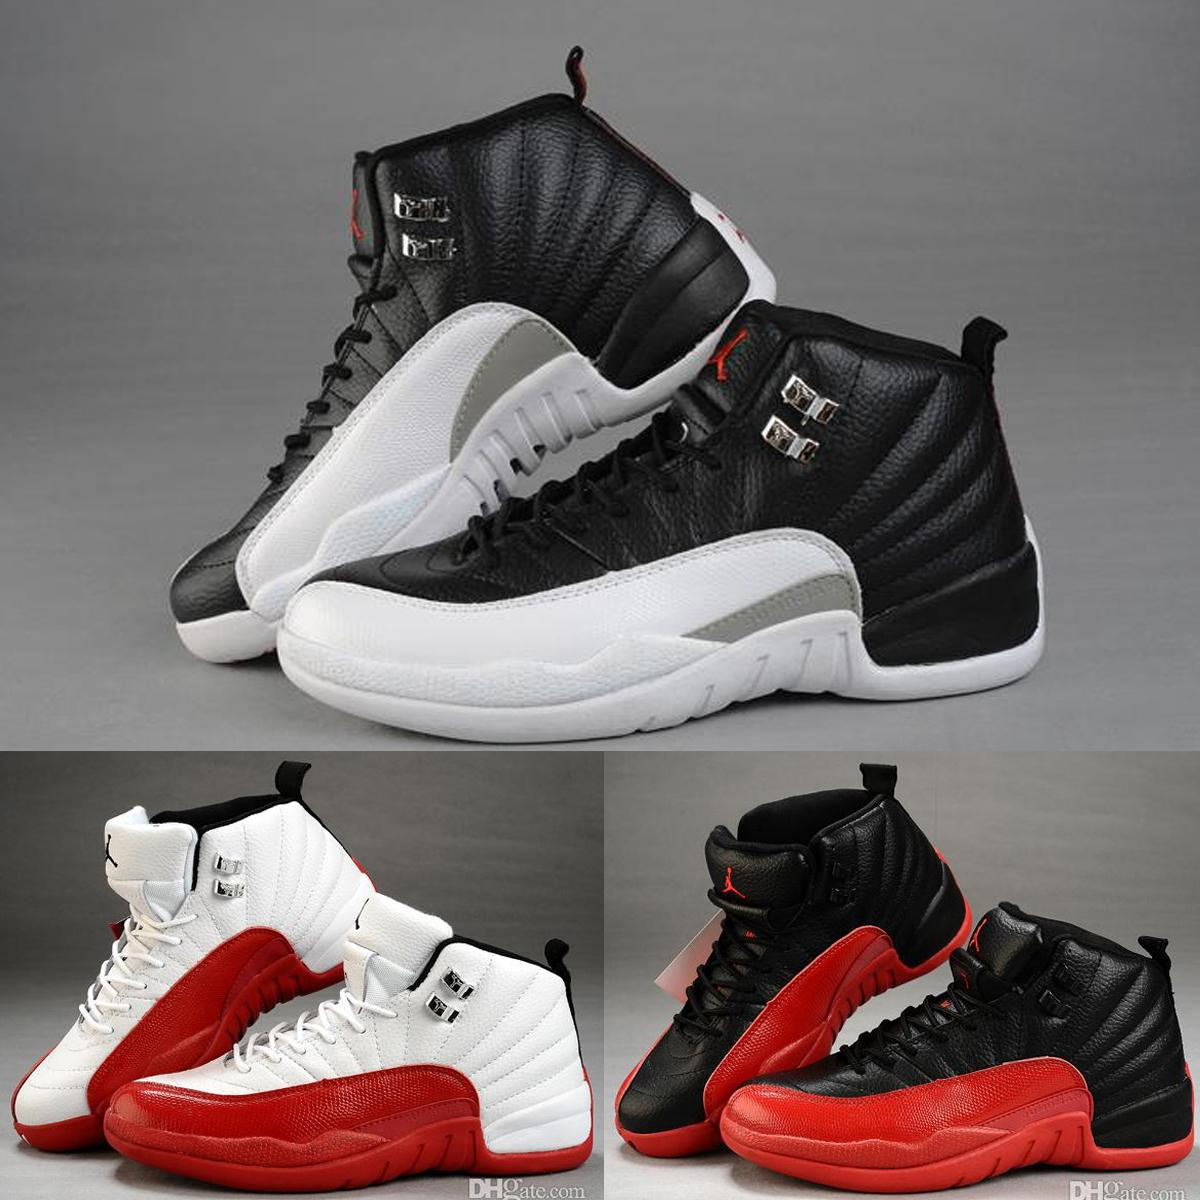 f87664eb14f99b Nike Air Jordan 12 Xii Taxi Playoff Black Flu Game Cherry Mens Womens  Basketball Shoes